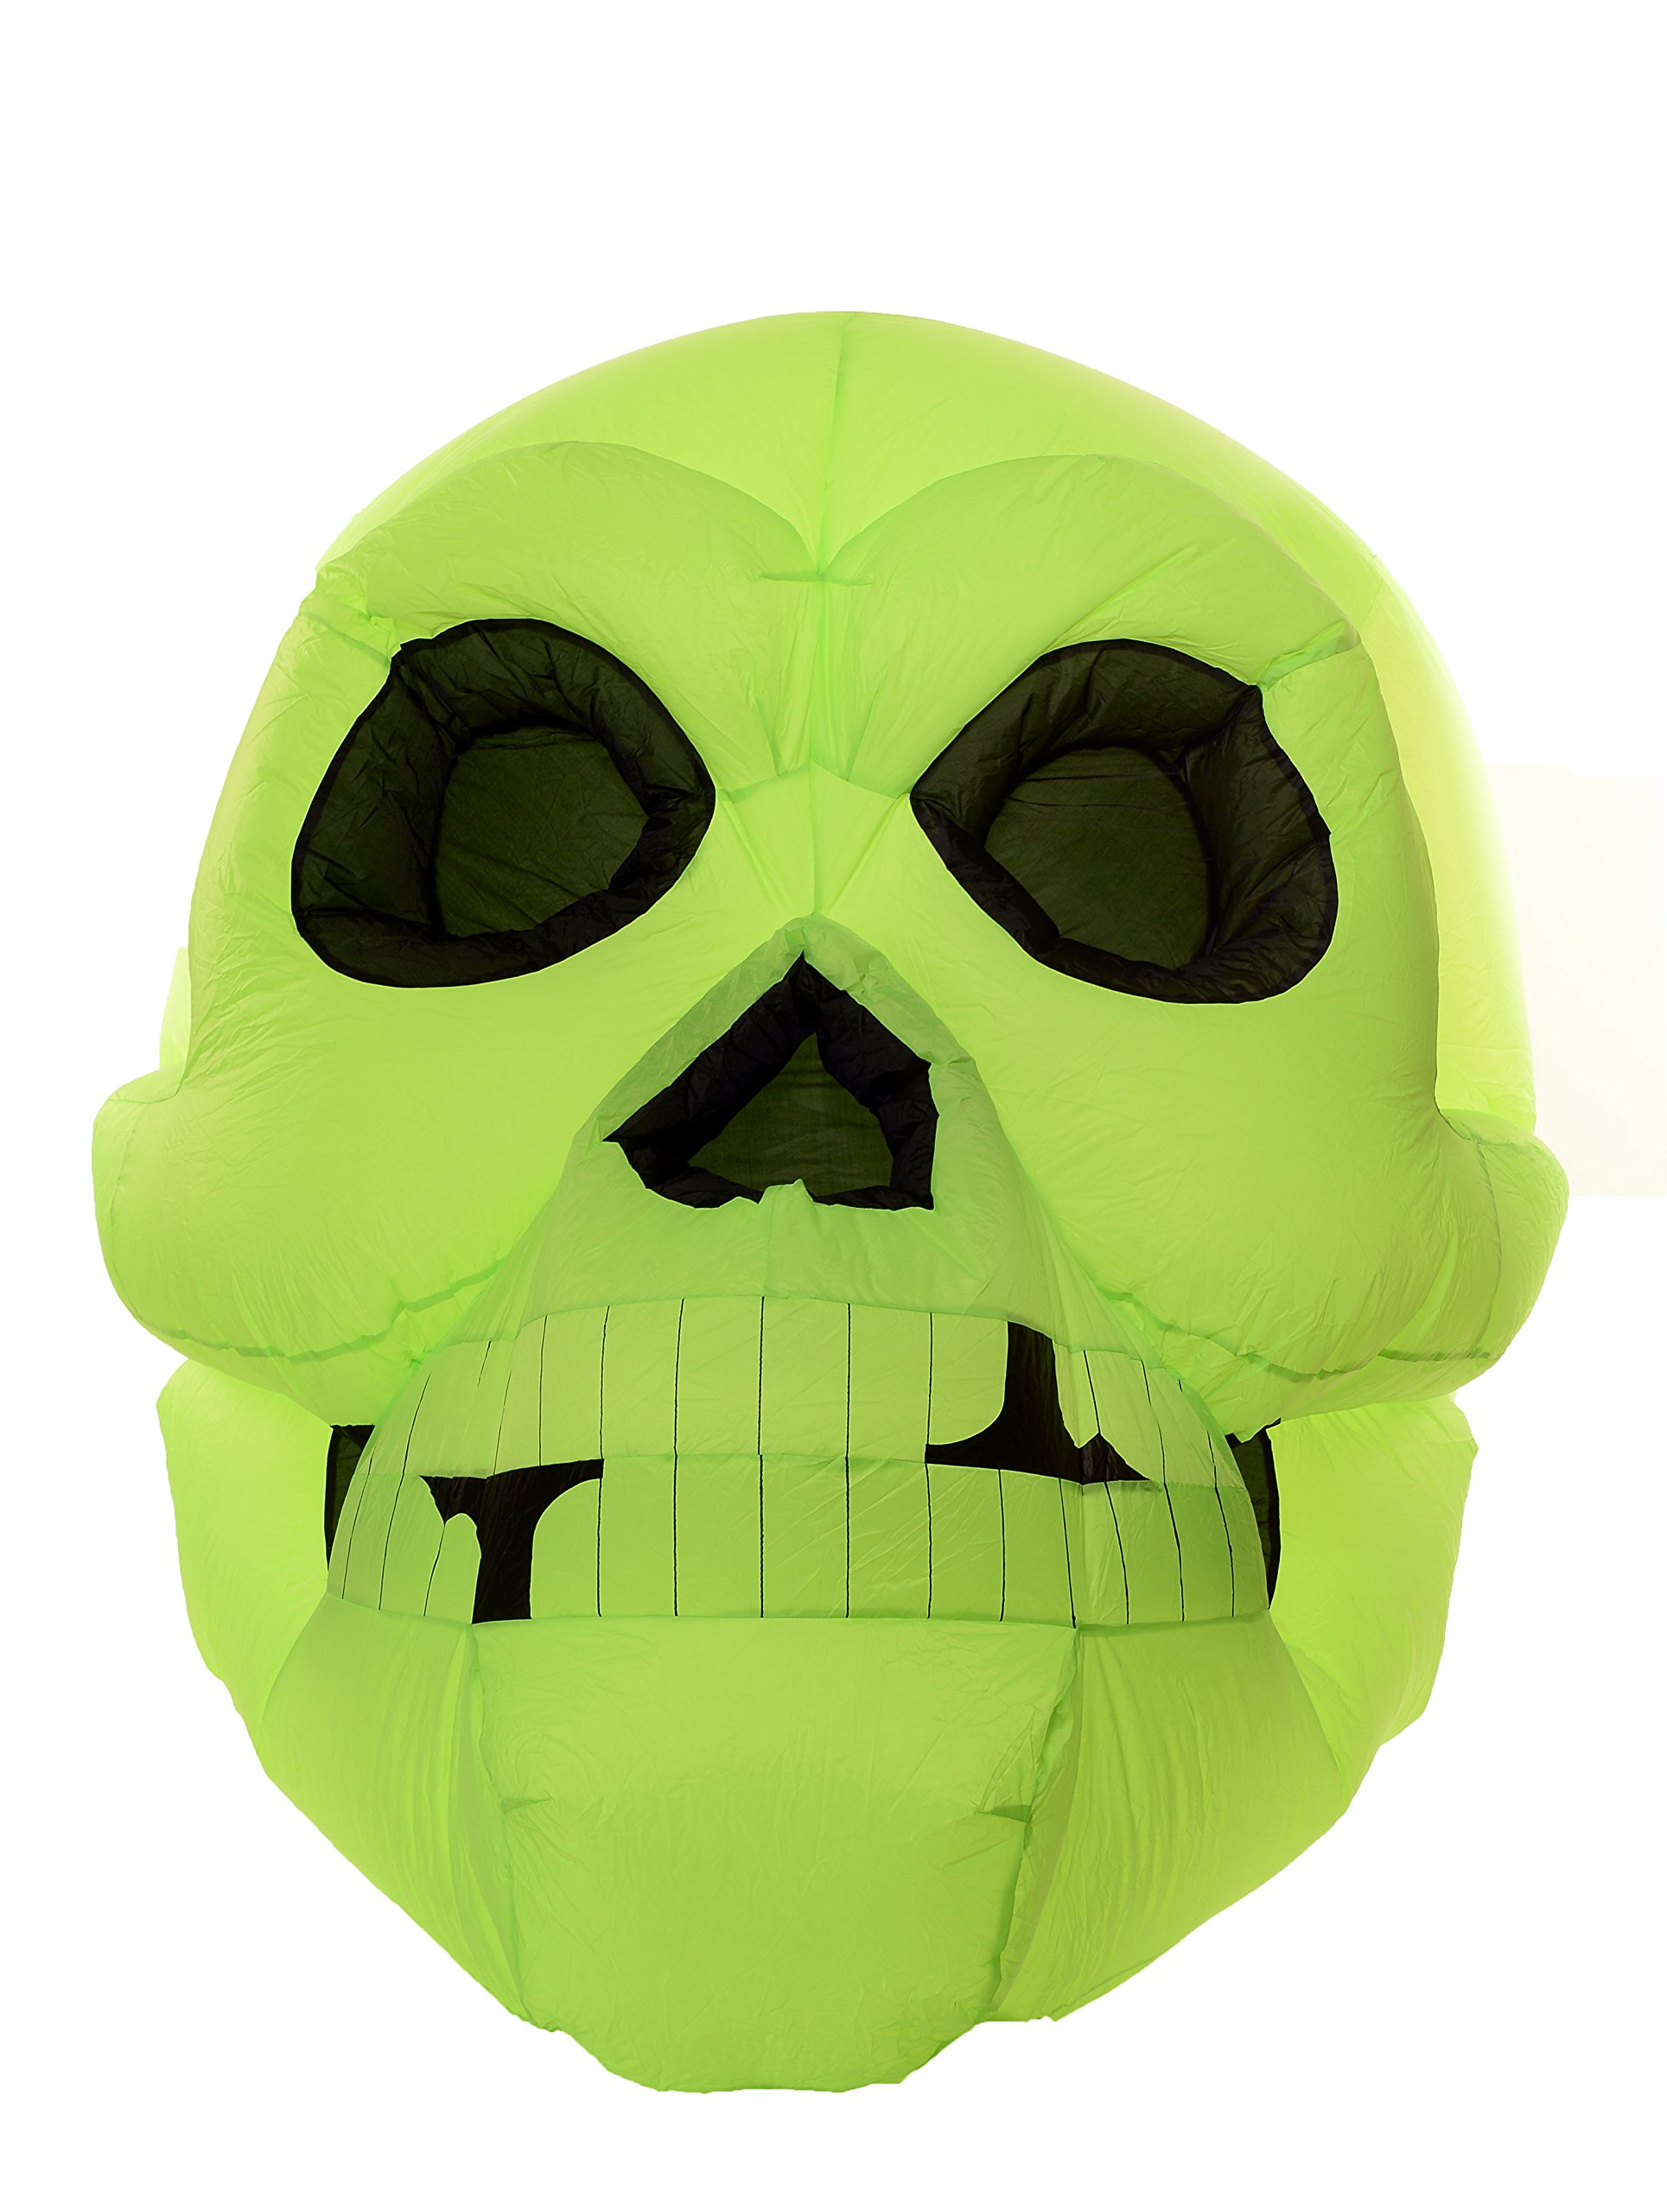 Huge 6.5 Foot Self Inflating Illuminated Giant Skull Yard Decoration Blow up Inflatable